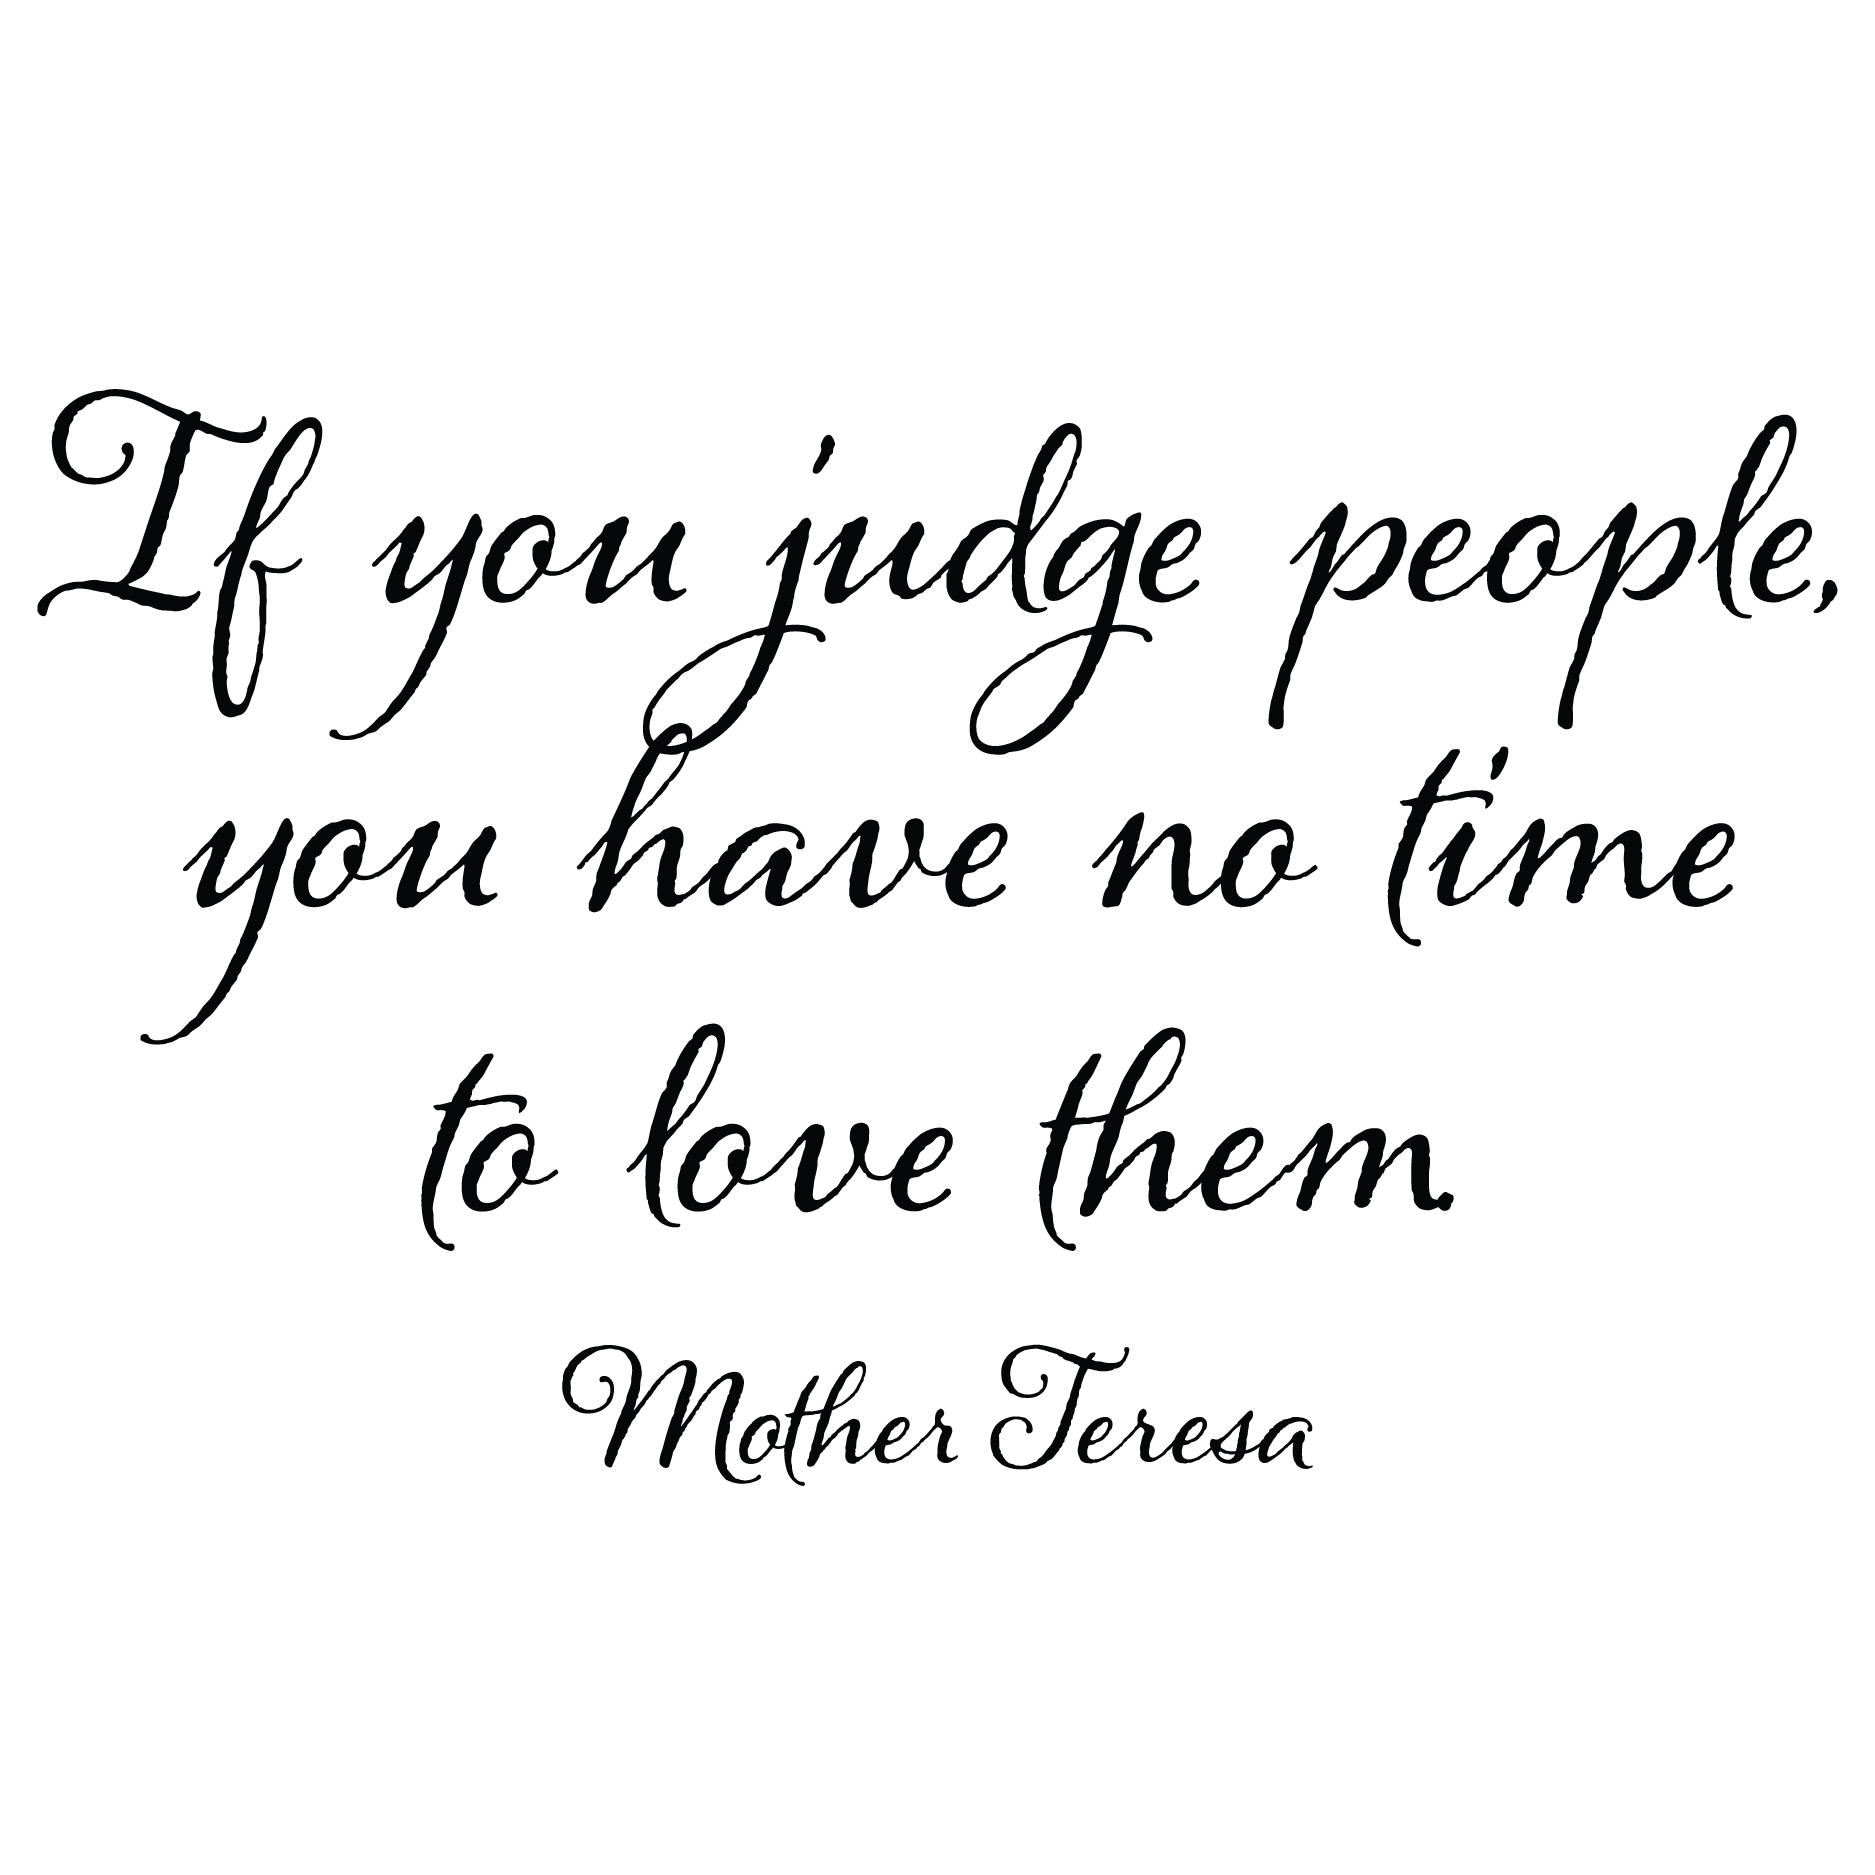 Mother Teresa Quotes Love Them Anyway If You Judge People You Have No Time To Love Them.